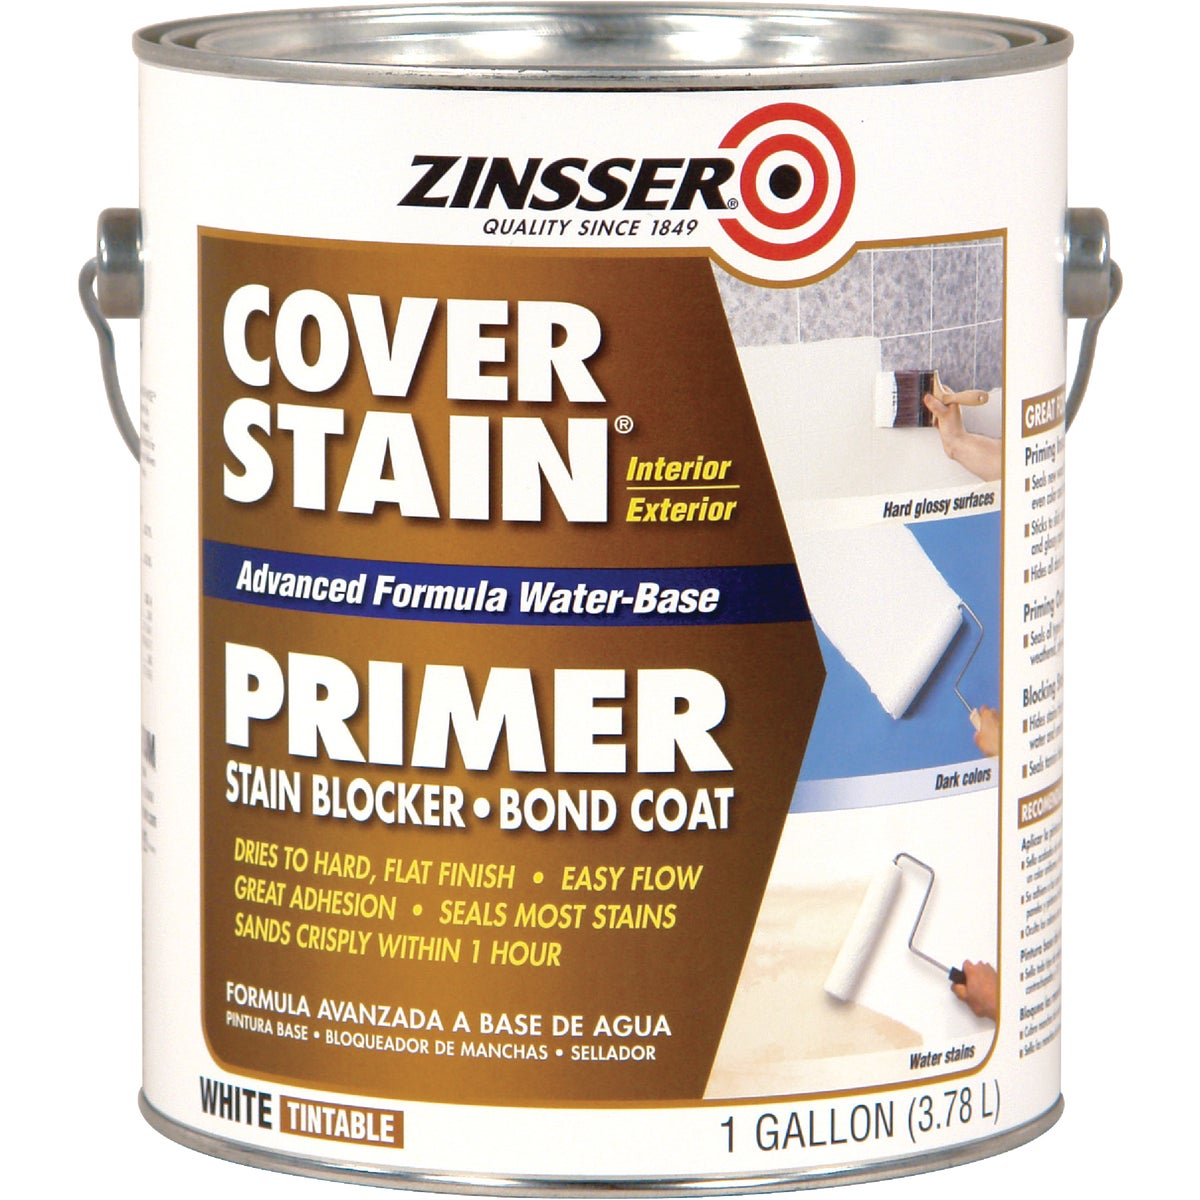 W/B COVER STAIN PRIMER